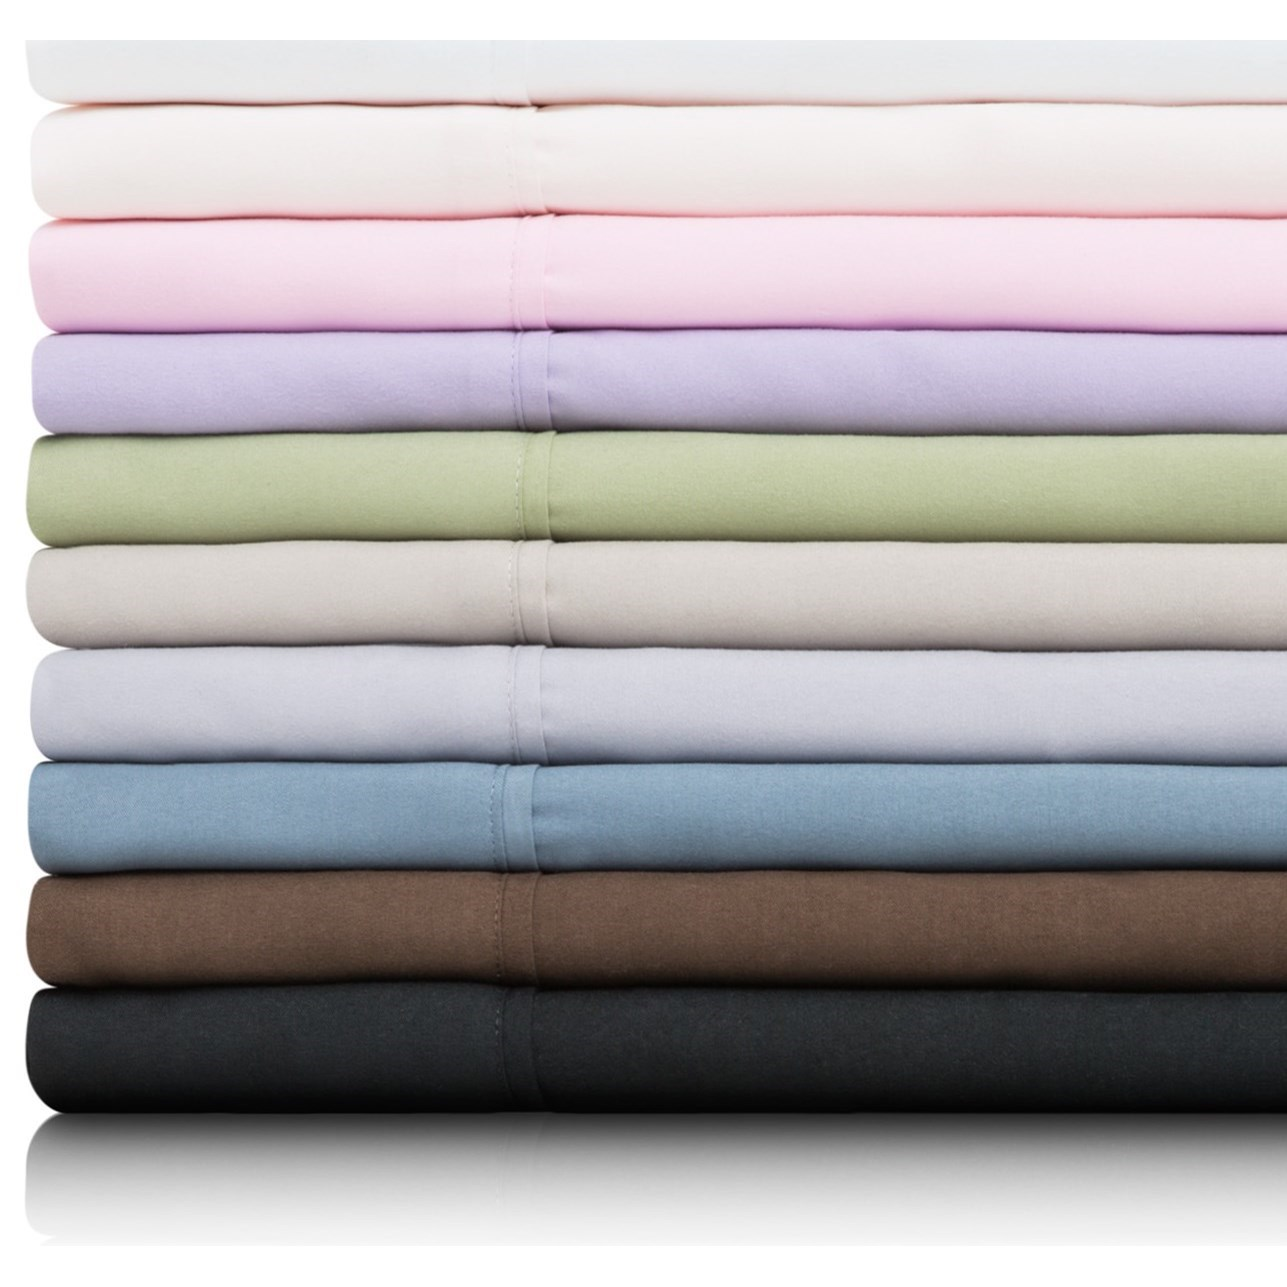 Malouf Brushed Microfiber Twin Woven™ Brushed Microfiber Sheet Set - Item Number: MA90TTIVMS